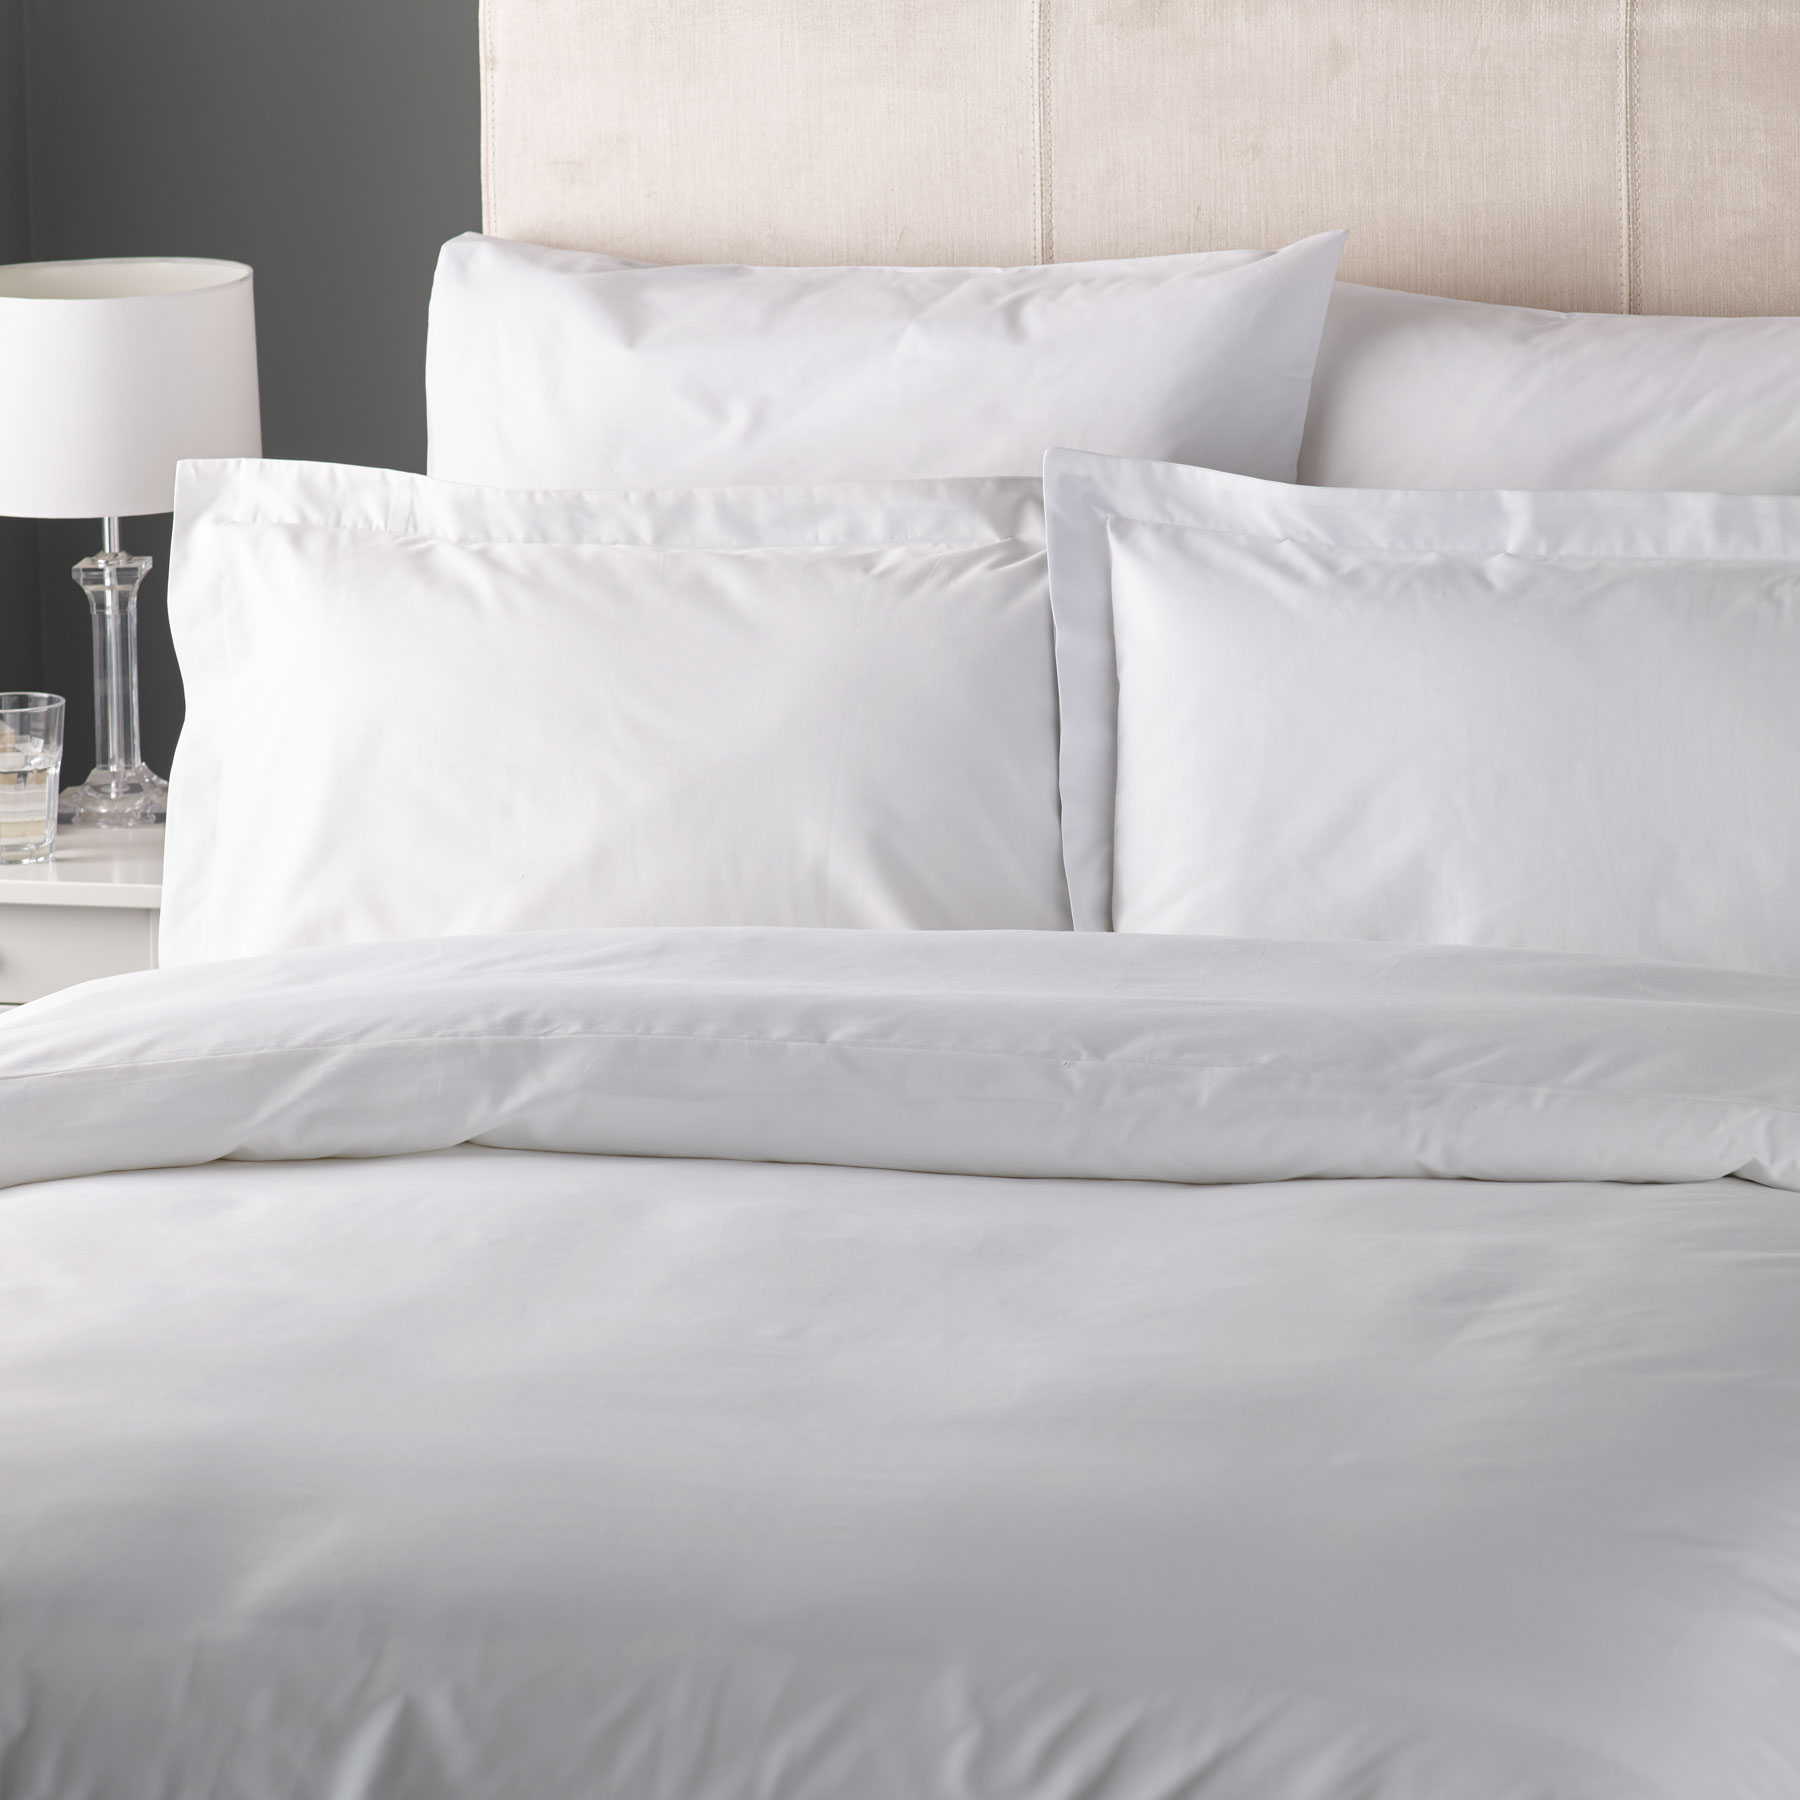 Performance bed linen